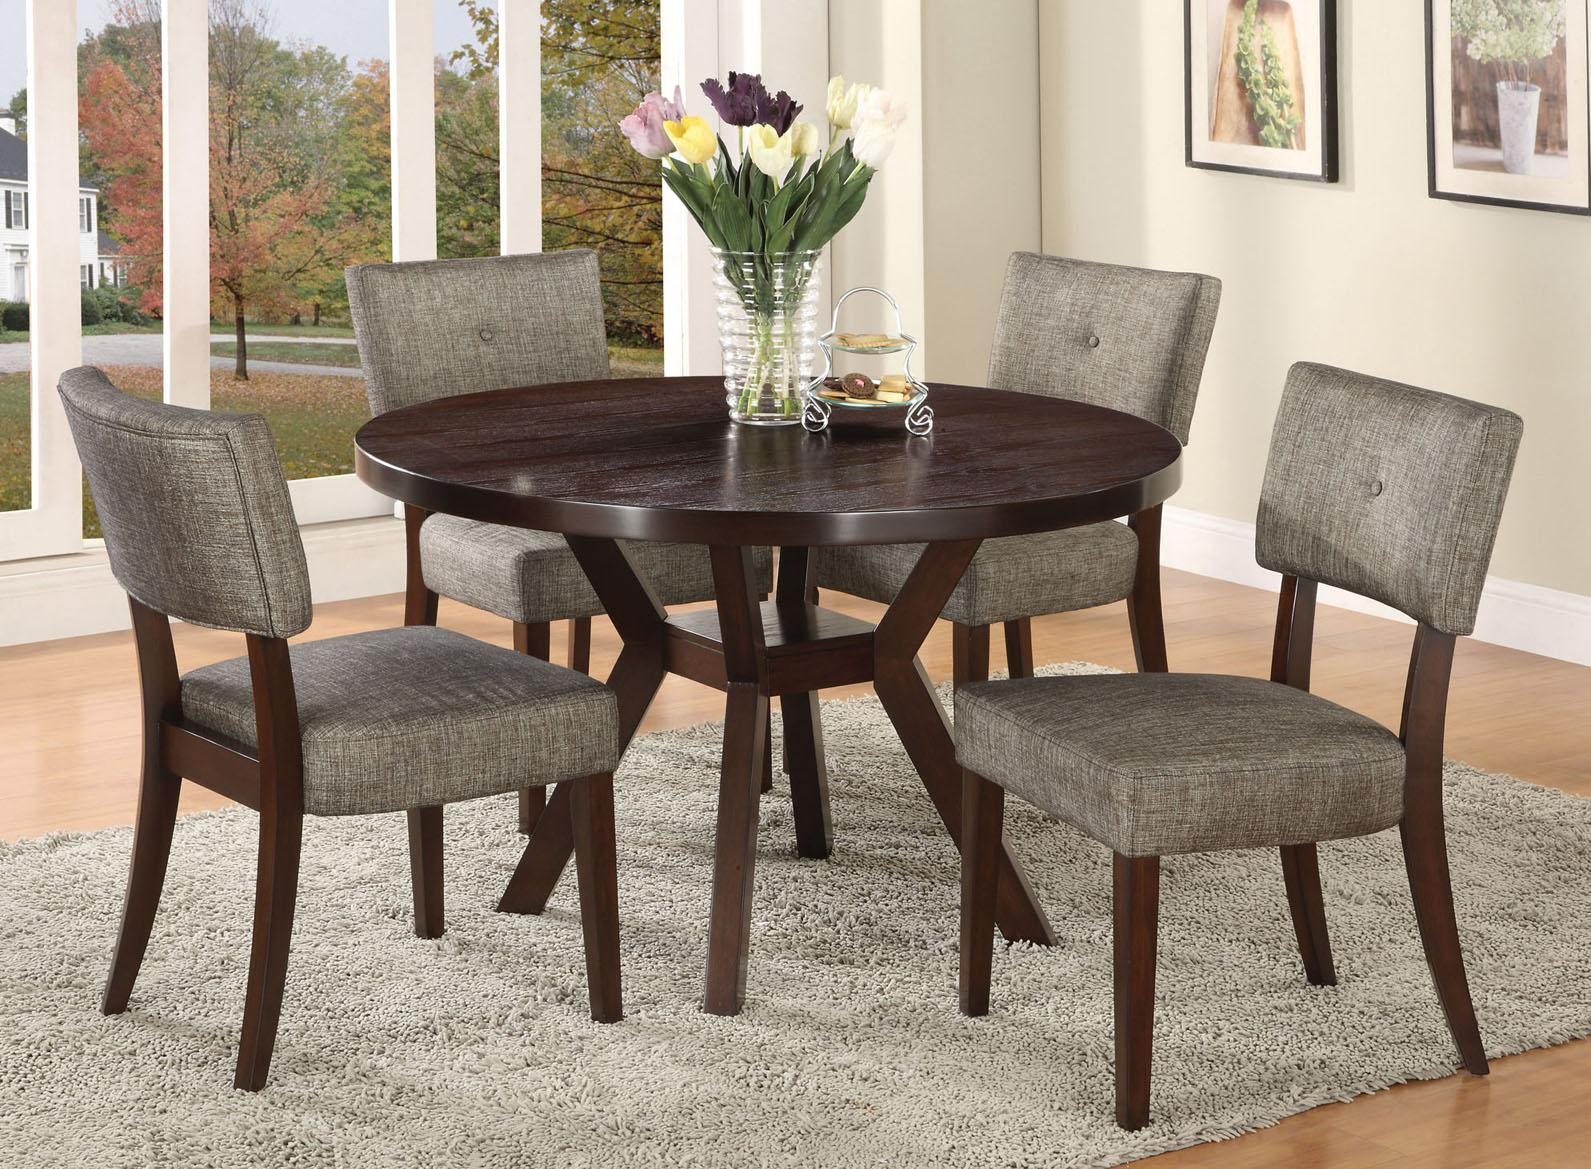 4 Chair Dining Sets acme furniture drake espresso 5 piece modern dining set